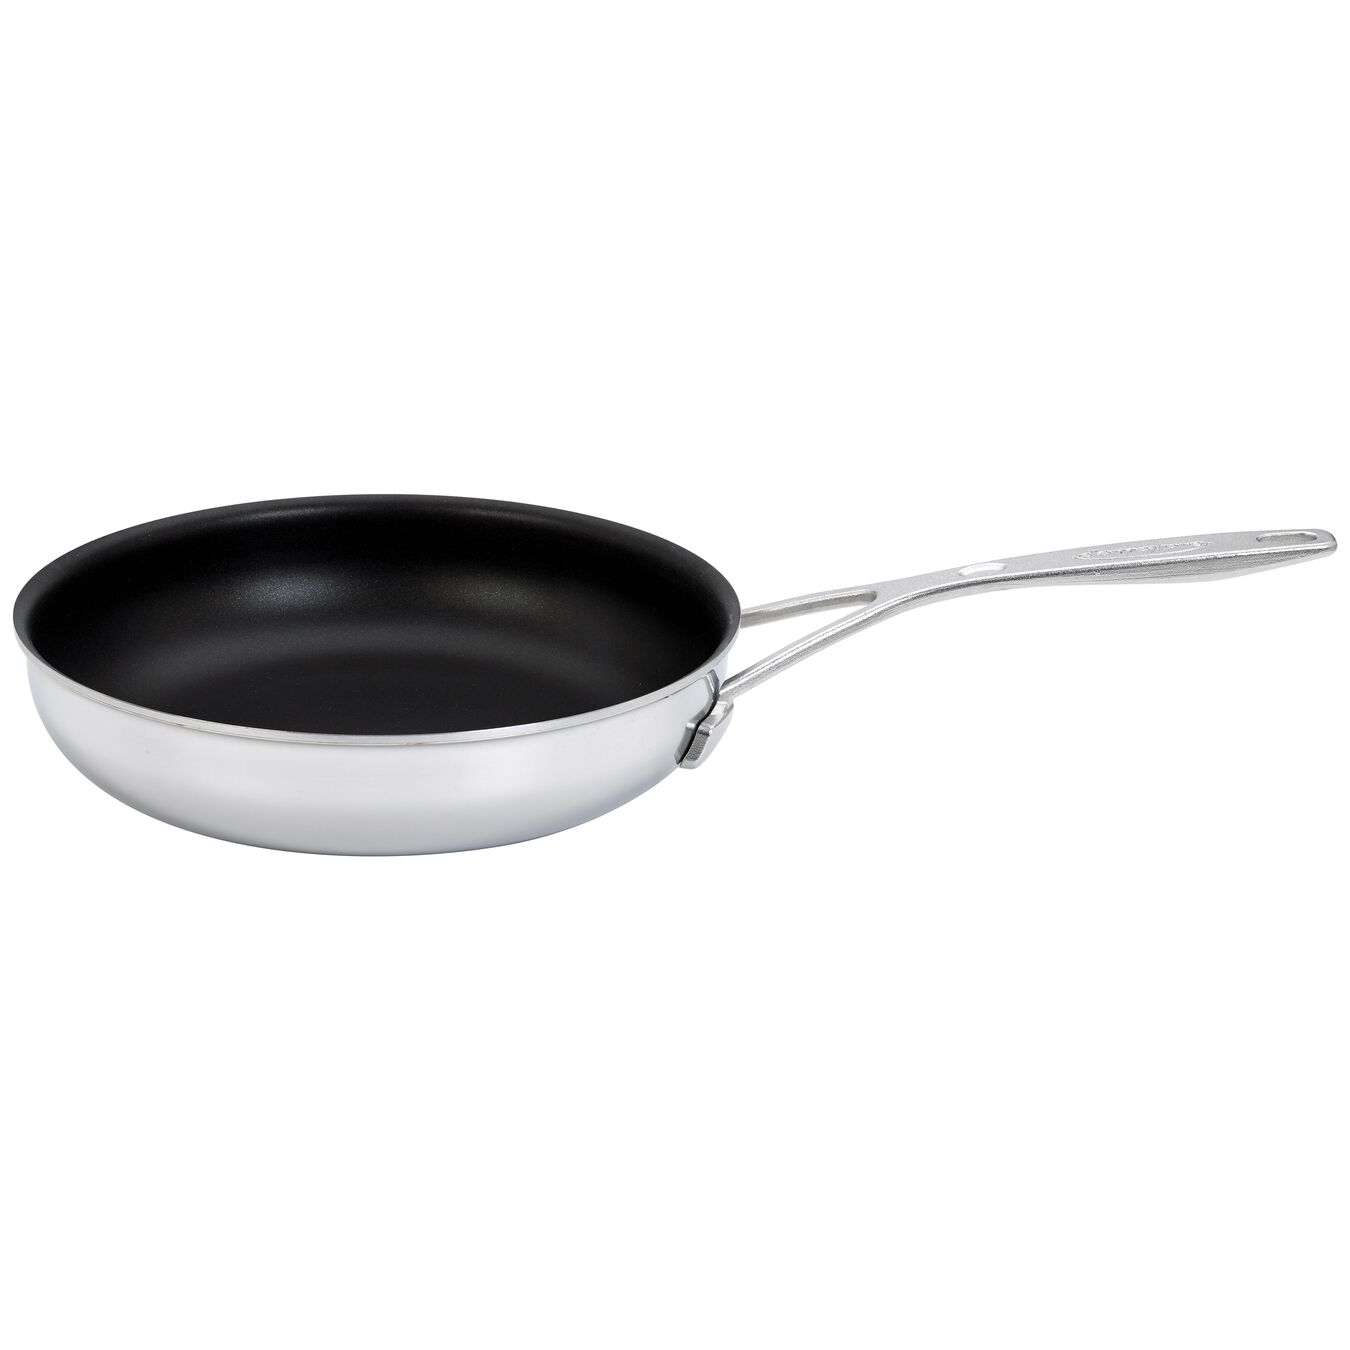 9.5-inch, 18/10 Stainless Steel, Non-stick, PTFE, Frying pan,,large 1